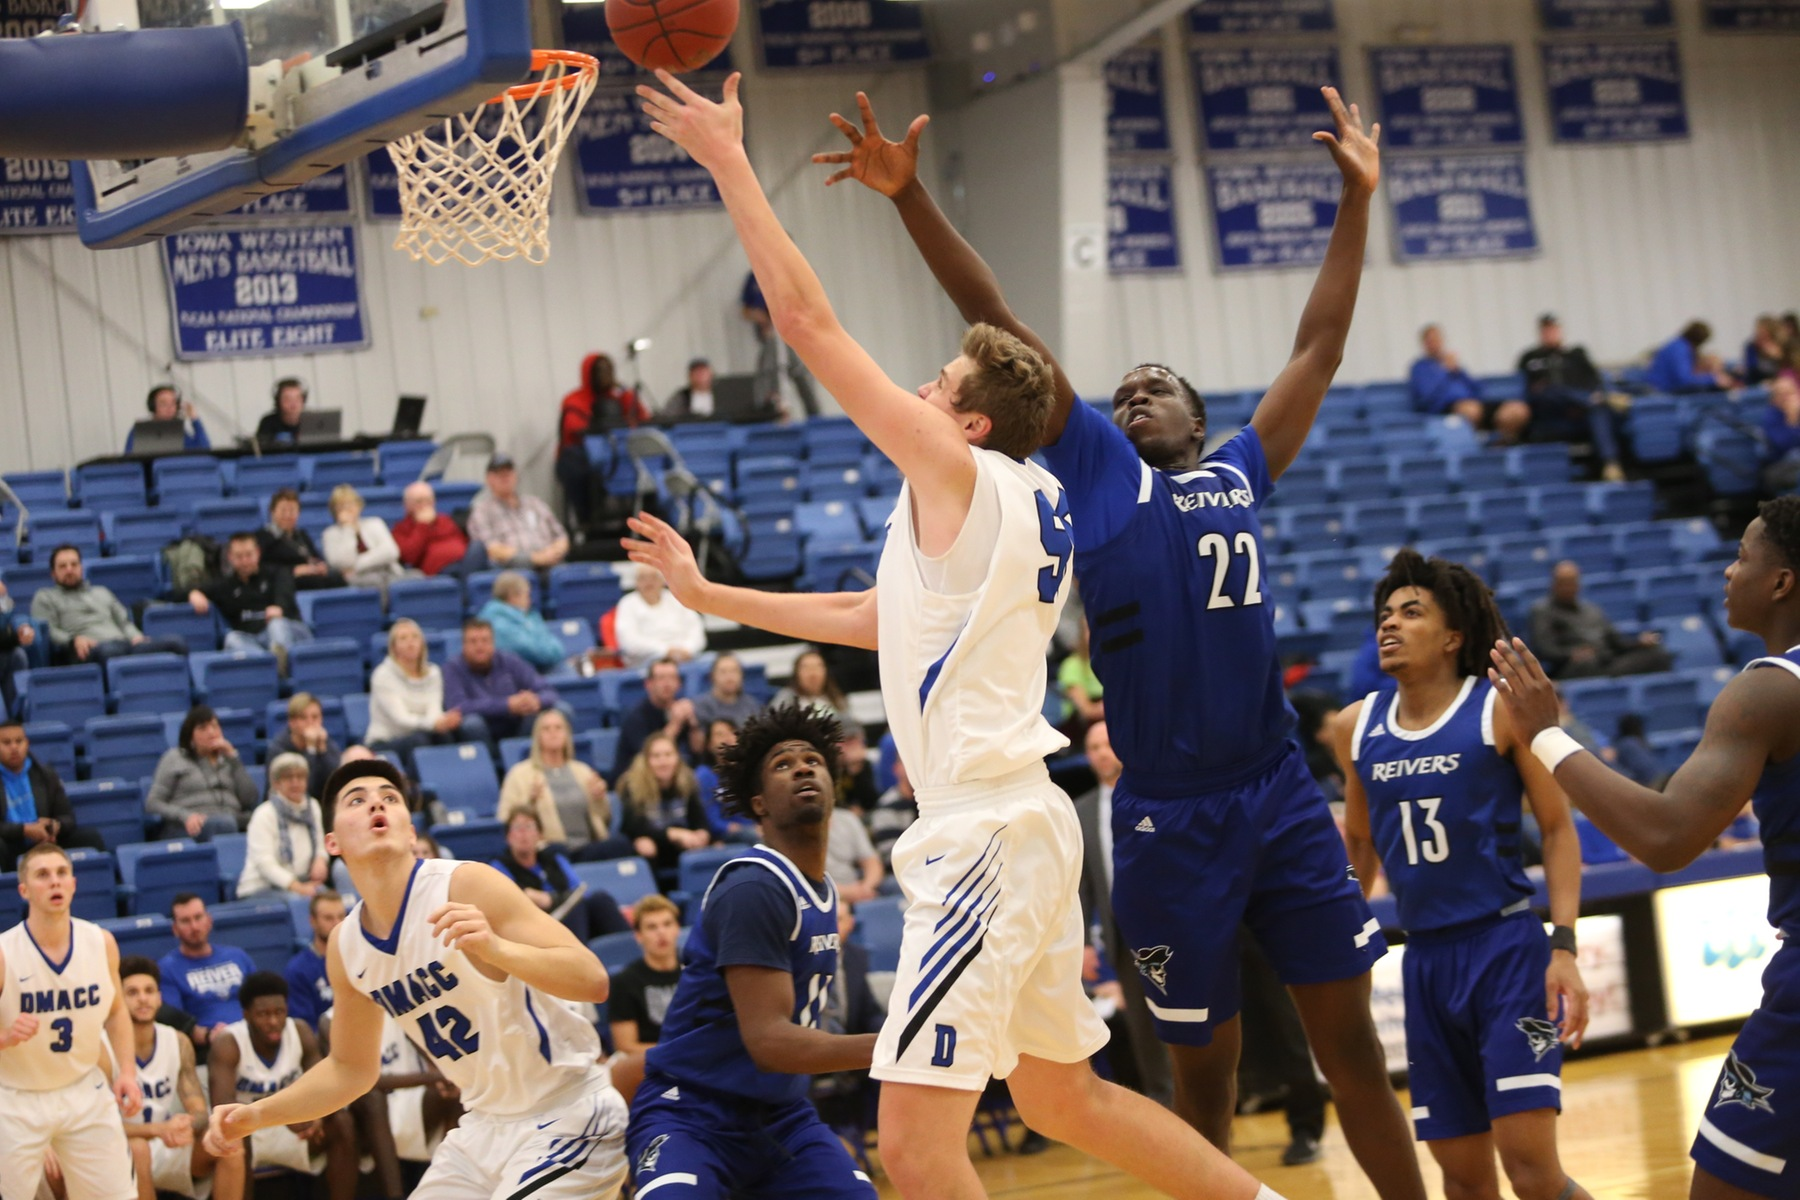 DMACC men's basketball team splits two games in Iowa Western Classic